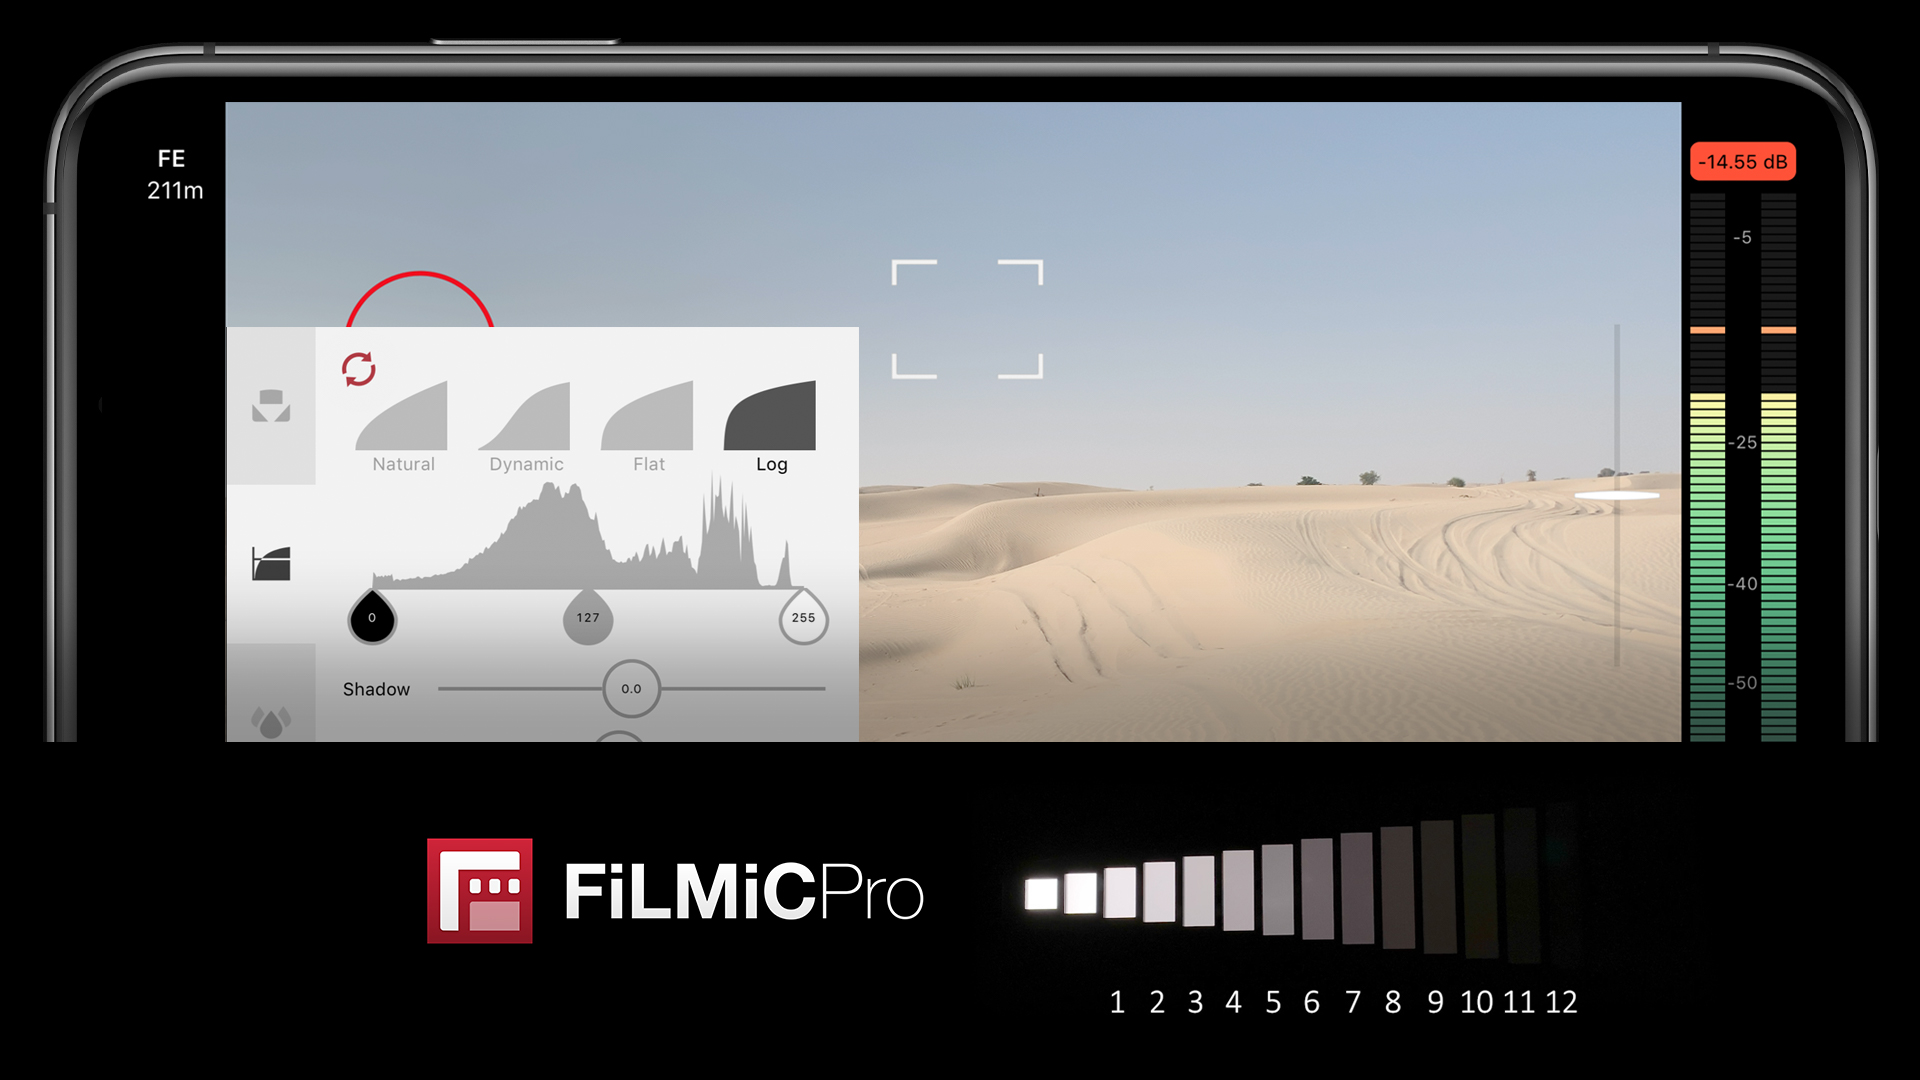 The Filmic Pro App shooting a desert scene